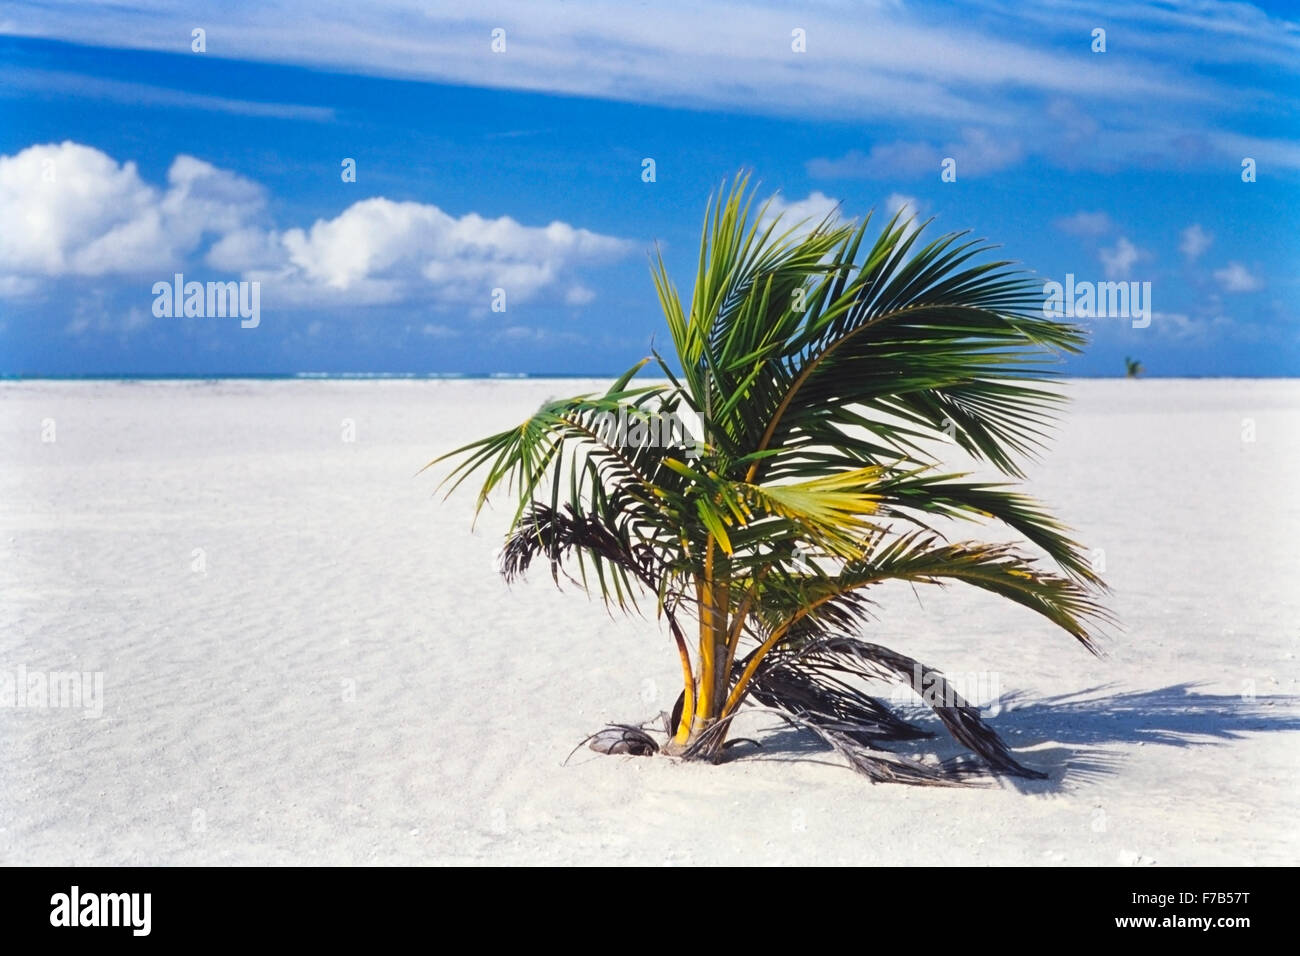 Coconut Palm tree (Cocos nucifera) colonizing sandbar in a tropical lagoon atoll. Primary succession on a new substrate. - Stock Image